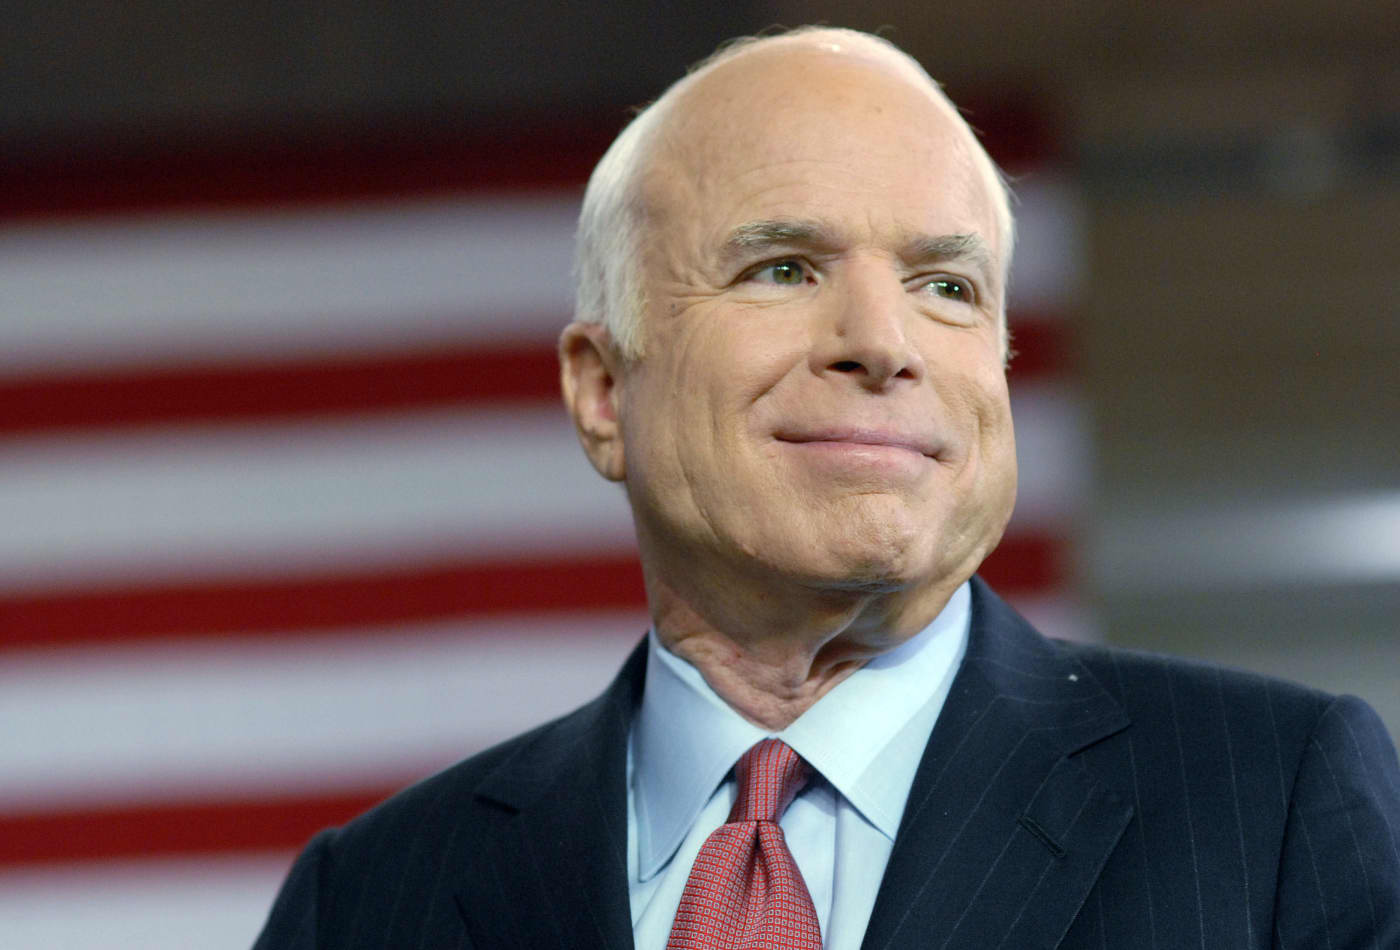 NATO is considering naming its headquarters after Sen. John McCain